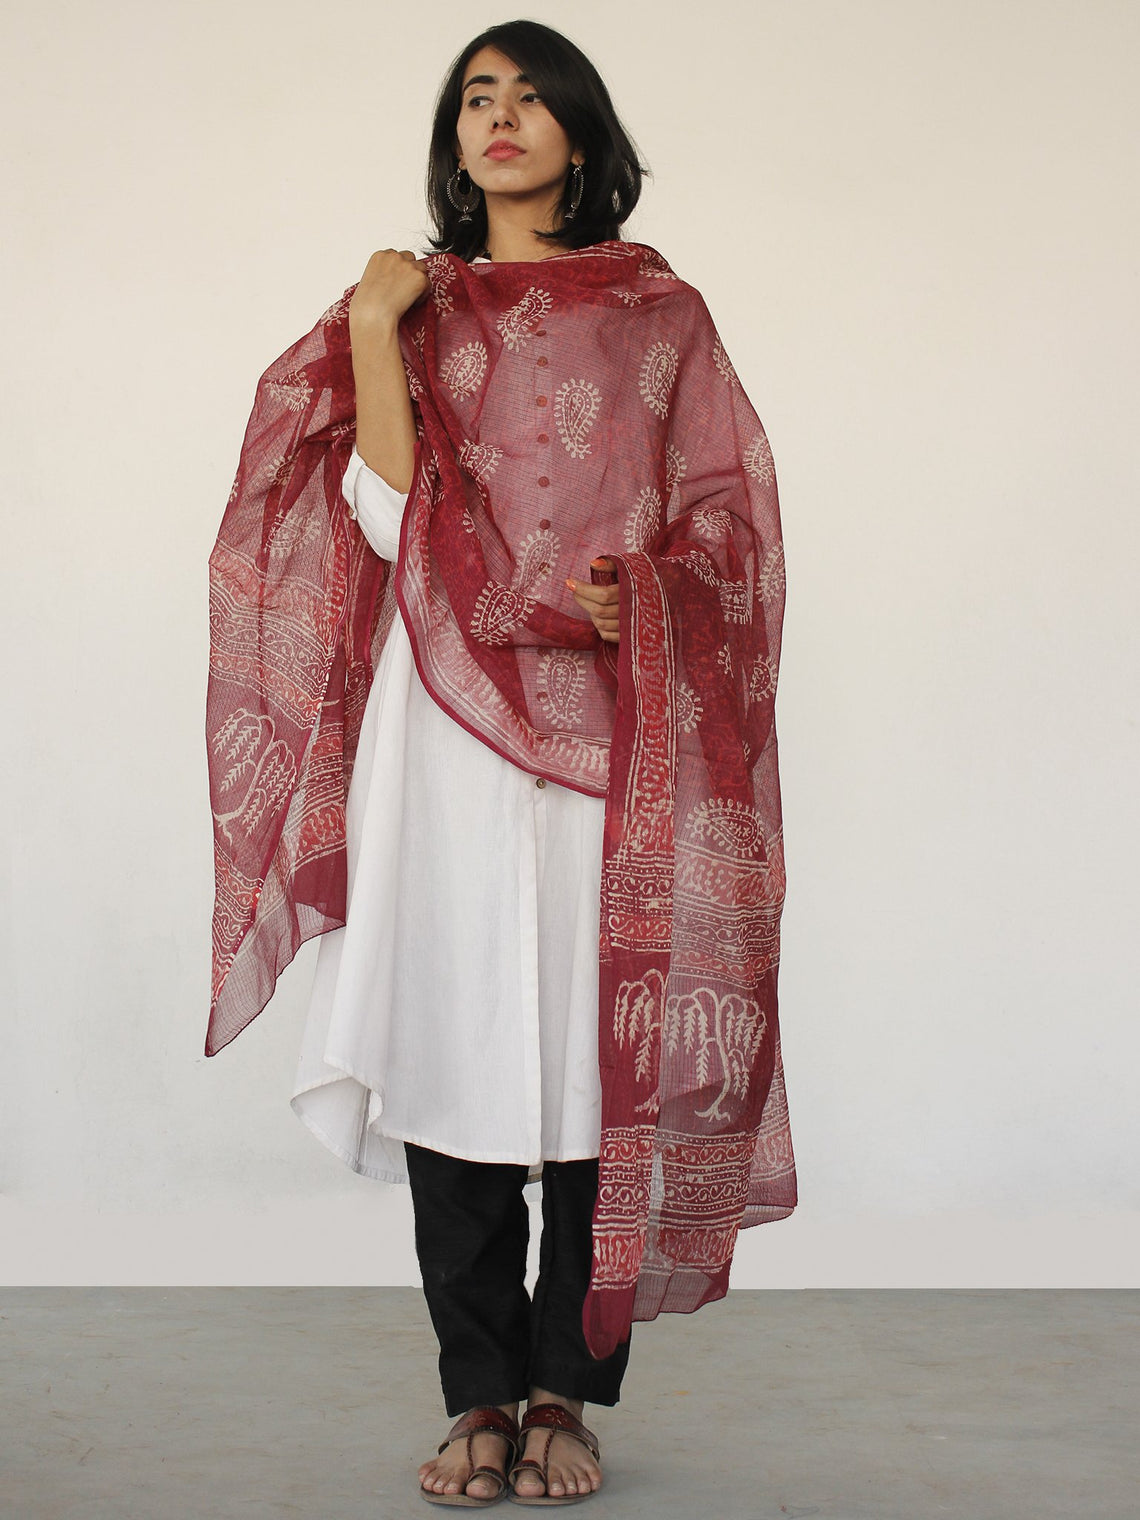 Red & Beige Kota Doria Cotton Hand Block Printed Dupatta  - D04170165